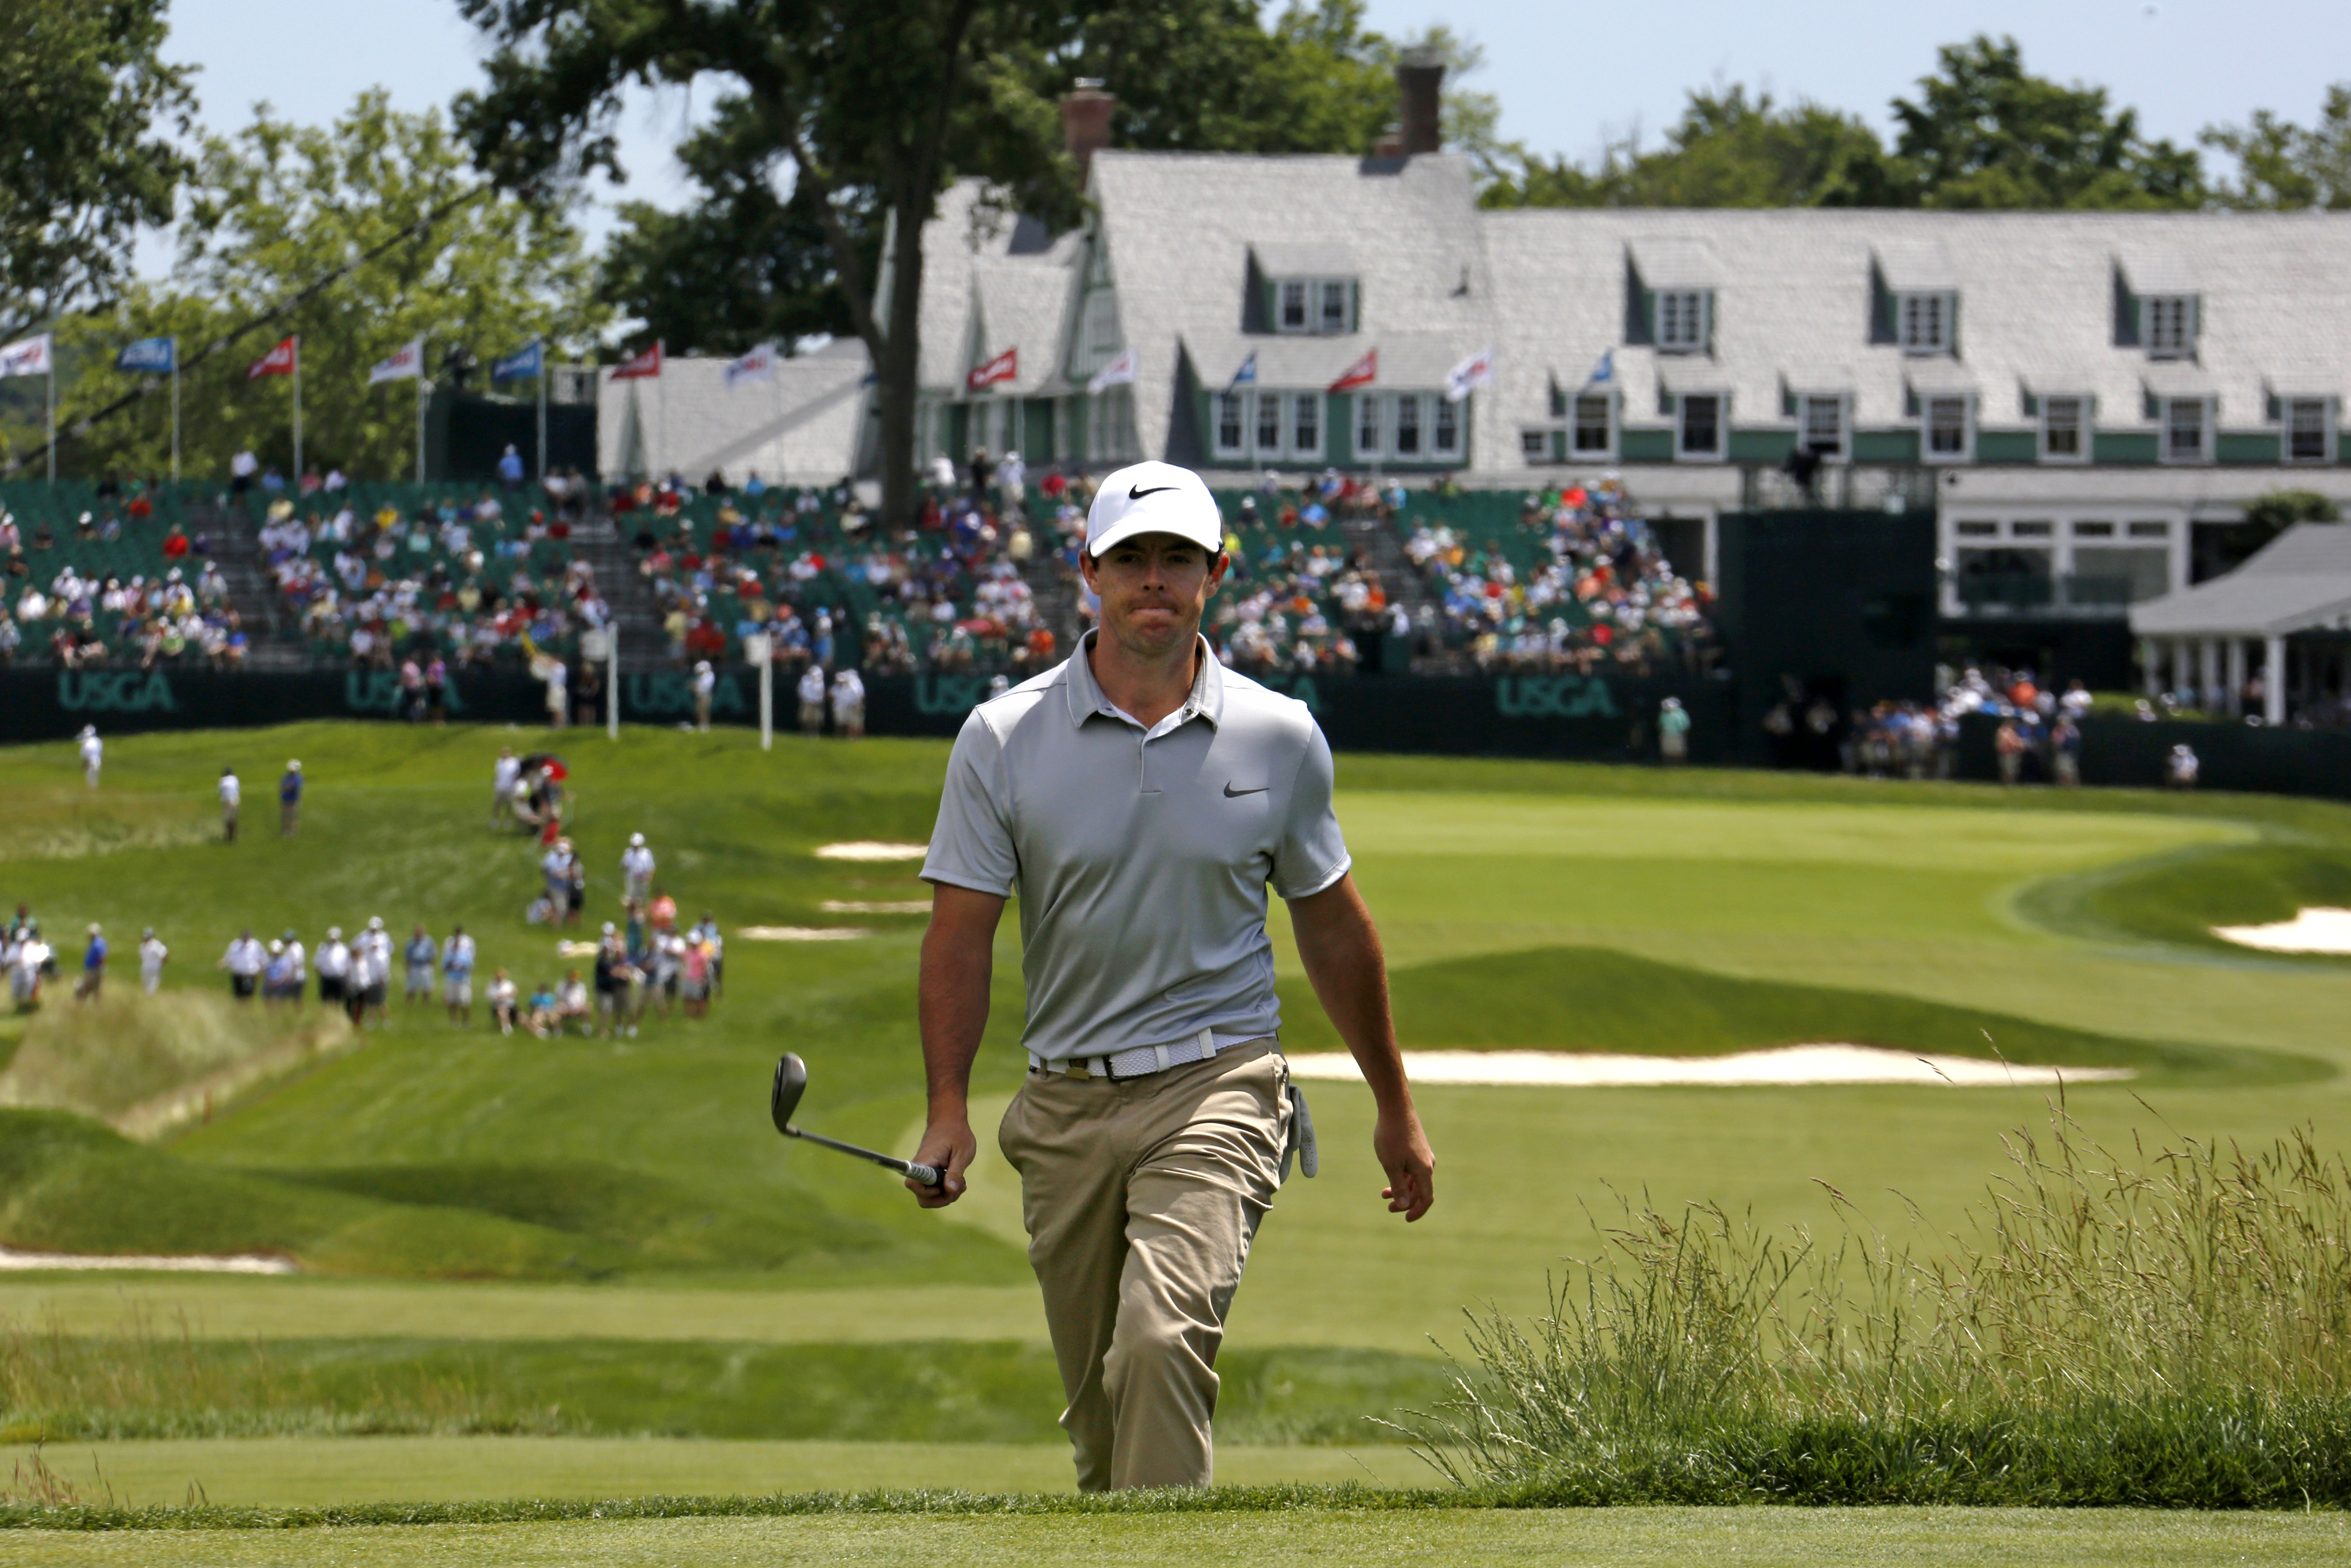 Rory McIlroy, of Northern Ireland, walks to the 18th tee during a practice round for the U.S. Open golf championship, at Oakmont Country Club in Oakmont, Pa., Monday, June 13, 2016. (AP Photo/Gene J. Puskar)